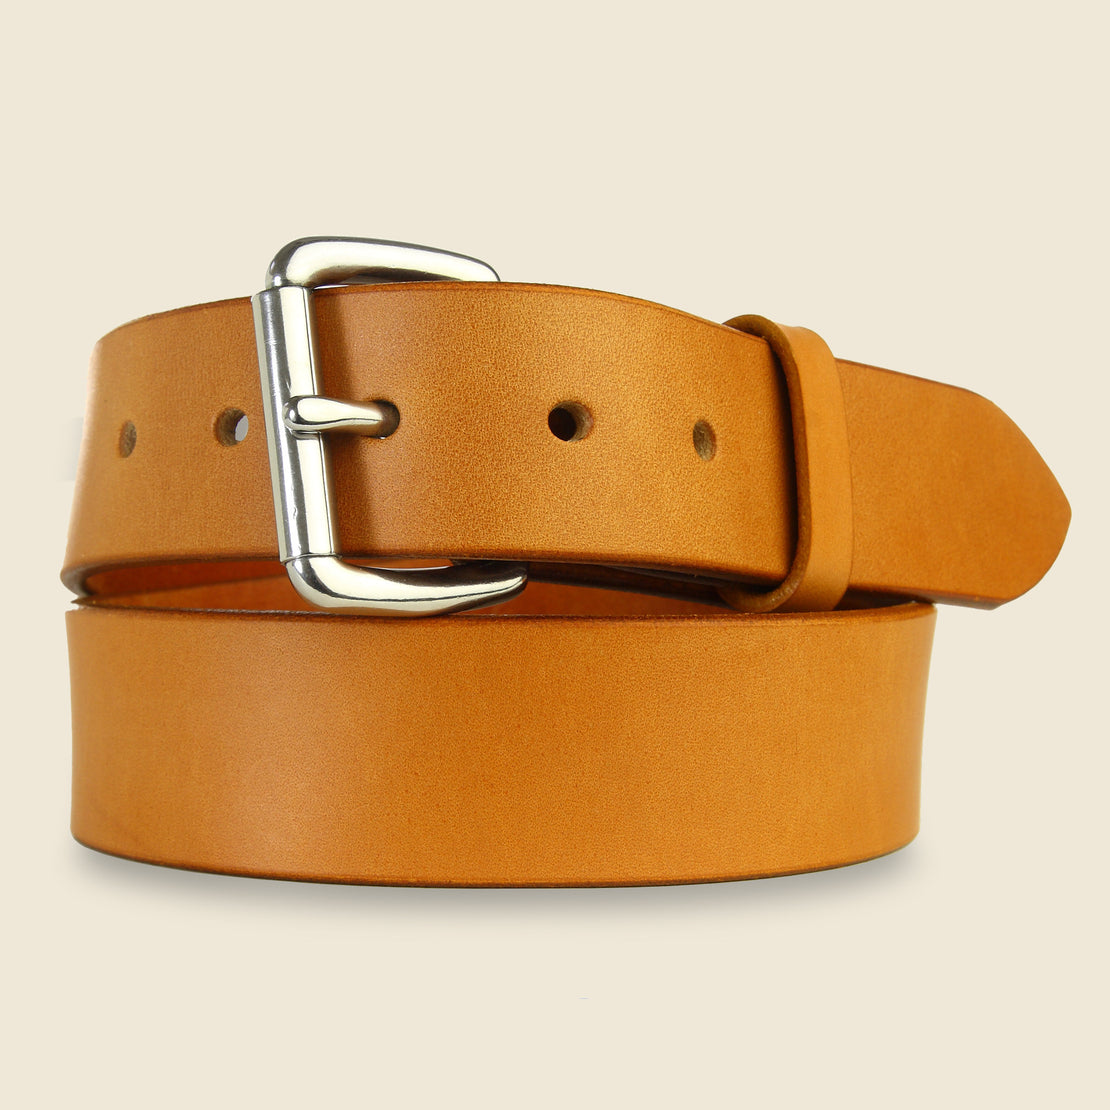 Tanner Tanner - Standard Belt - Tan / Stainless Steel